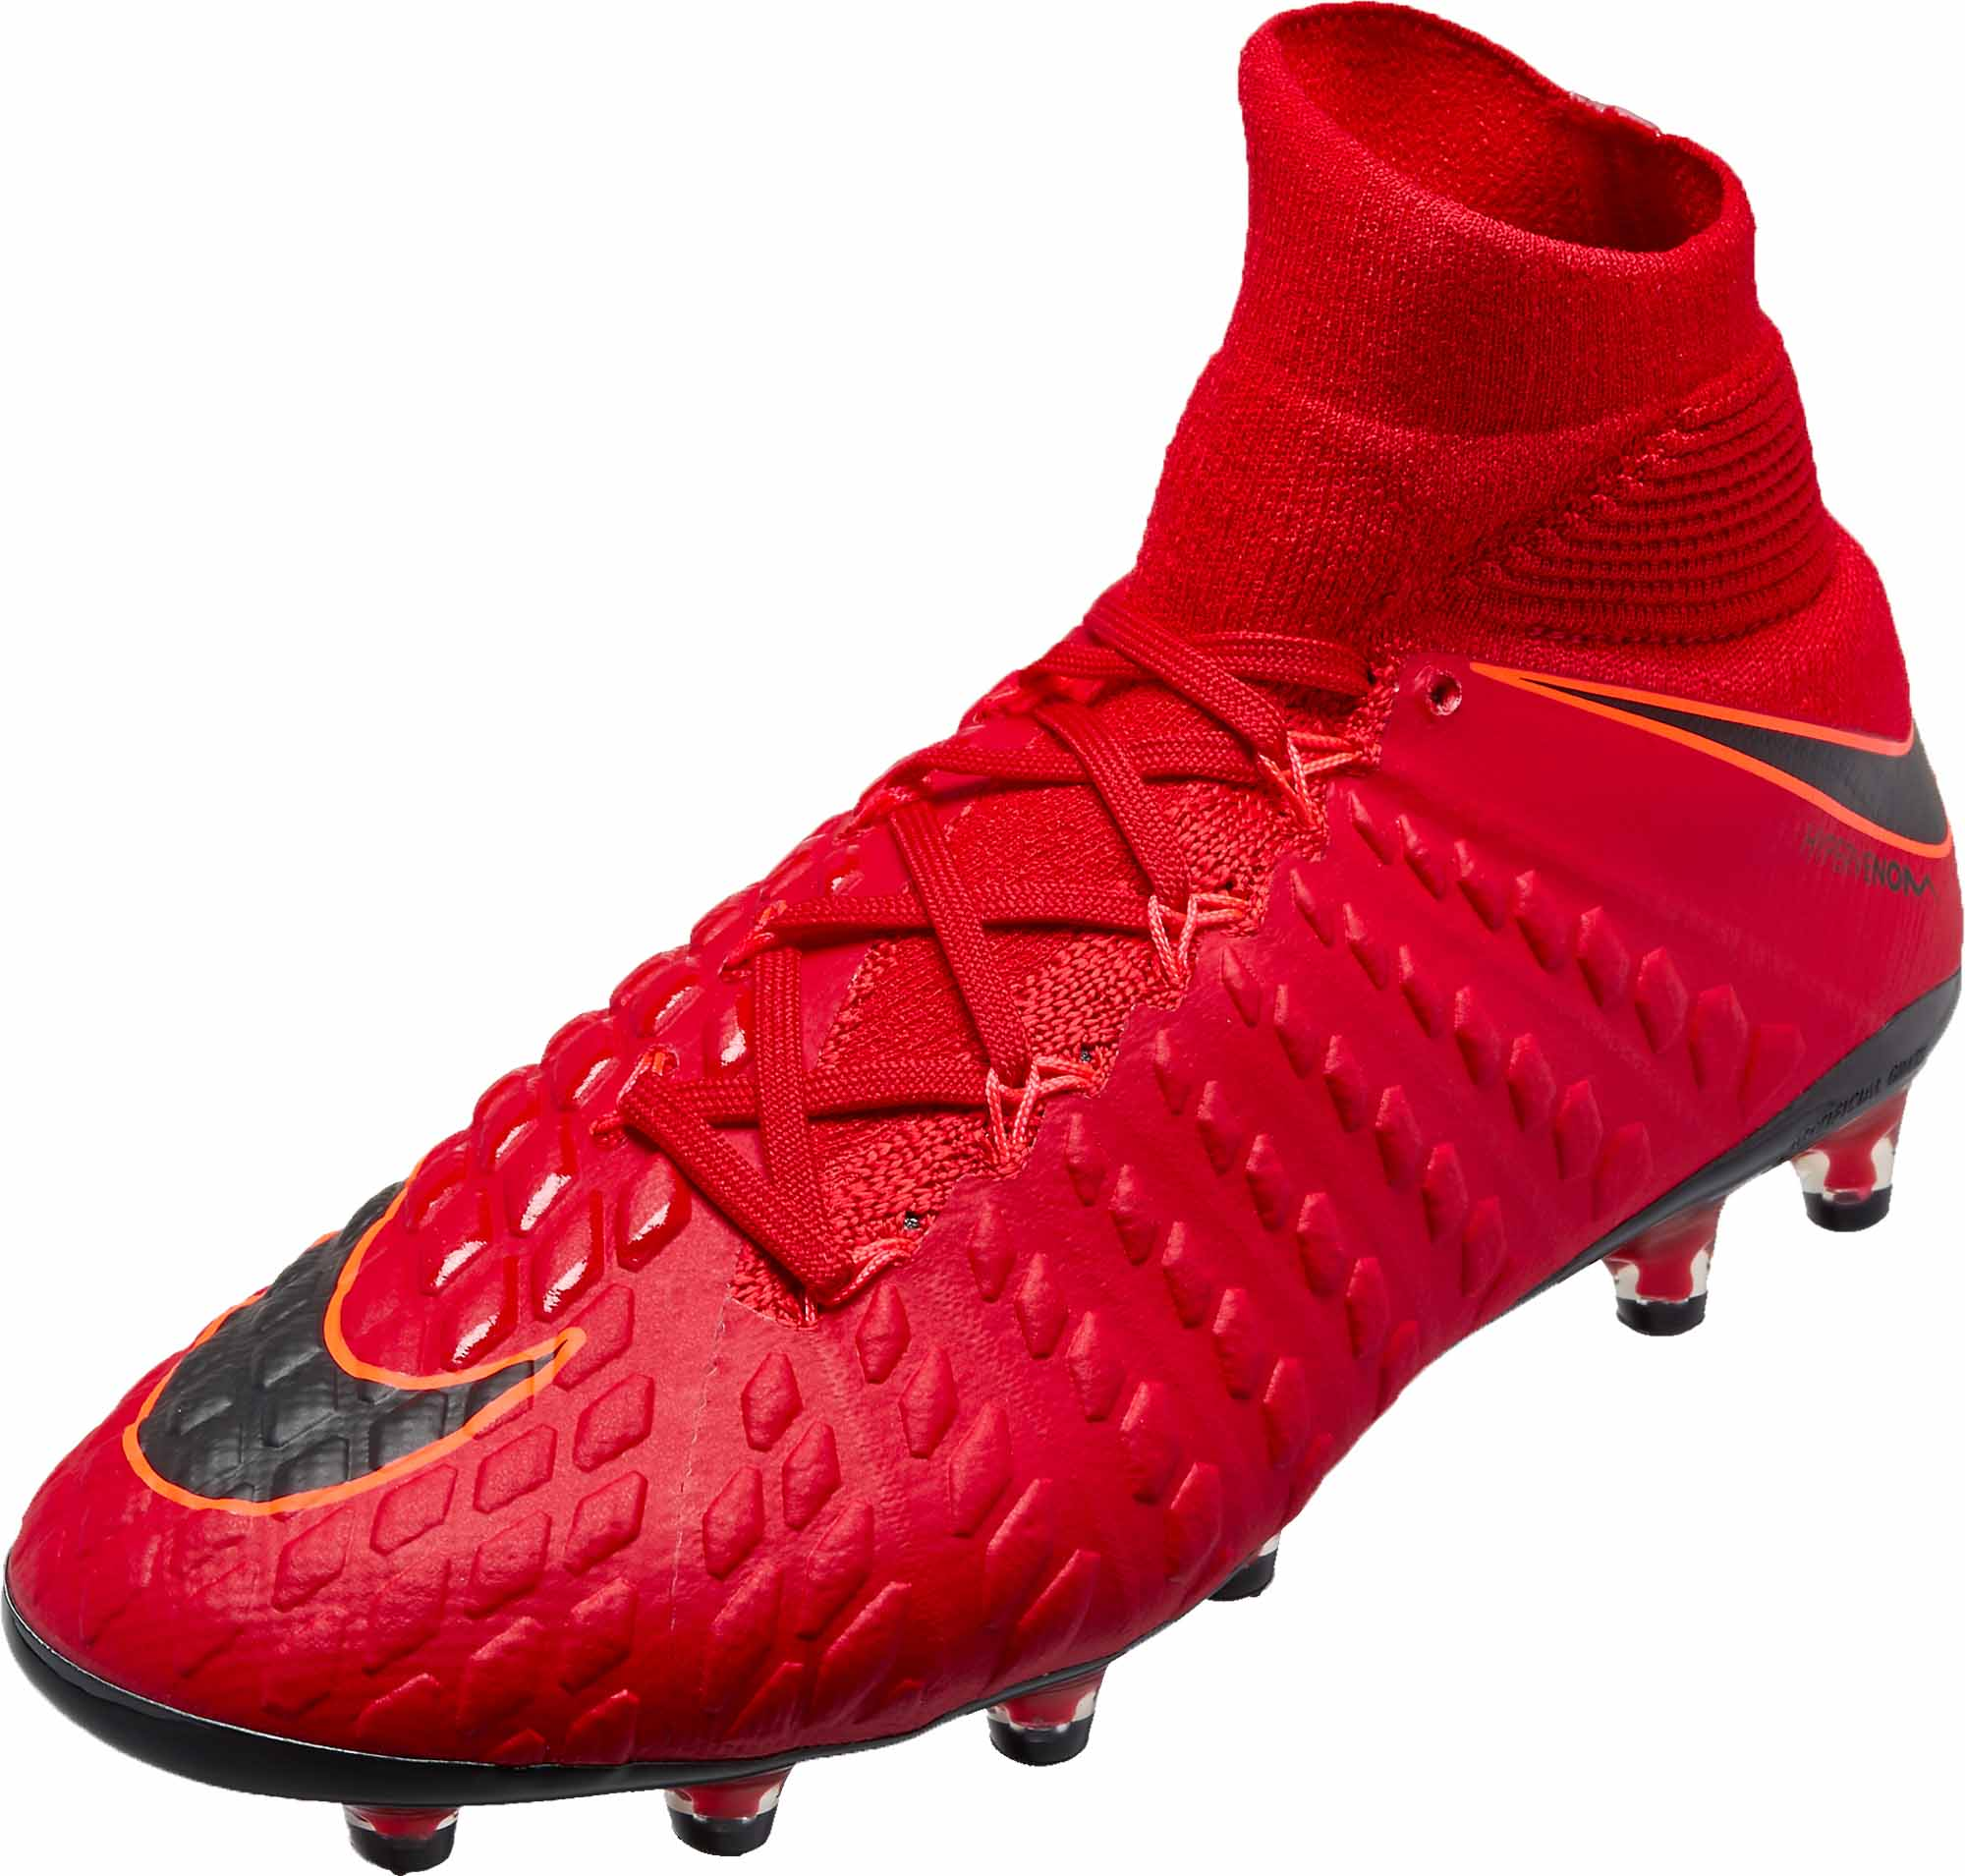 100% high quality low price footwear Nike Hypervenom Phantom III DF AG-Pro - University Red ...